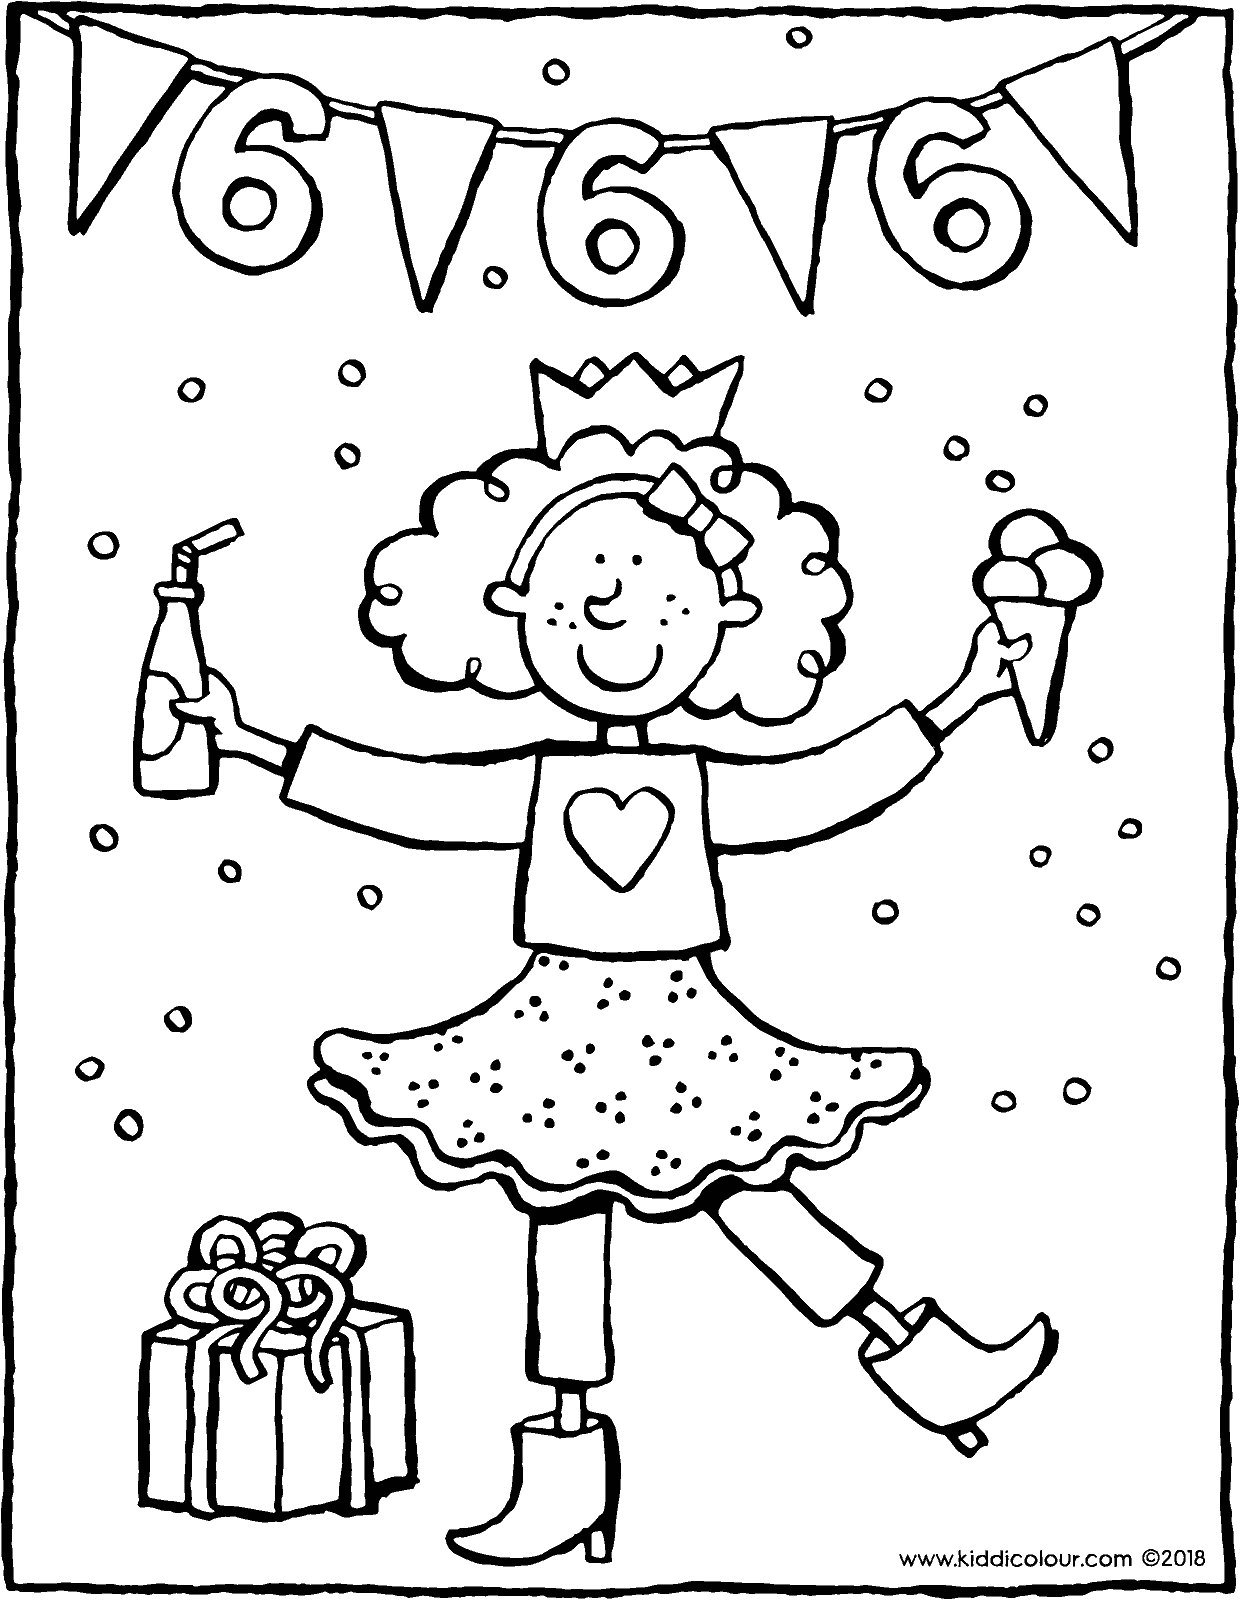 printable coloring pages for 6 year olds coloring pages for 6 year olds free download on clipartmag for pages 6 printable olds coloring year